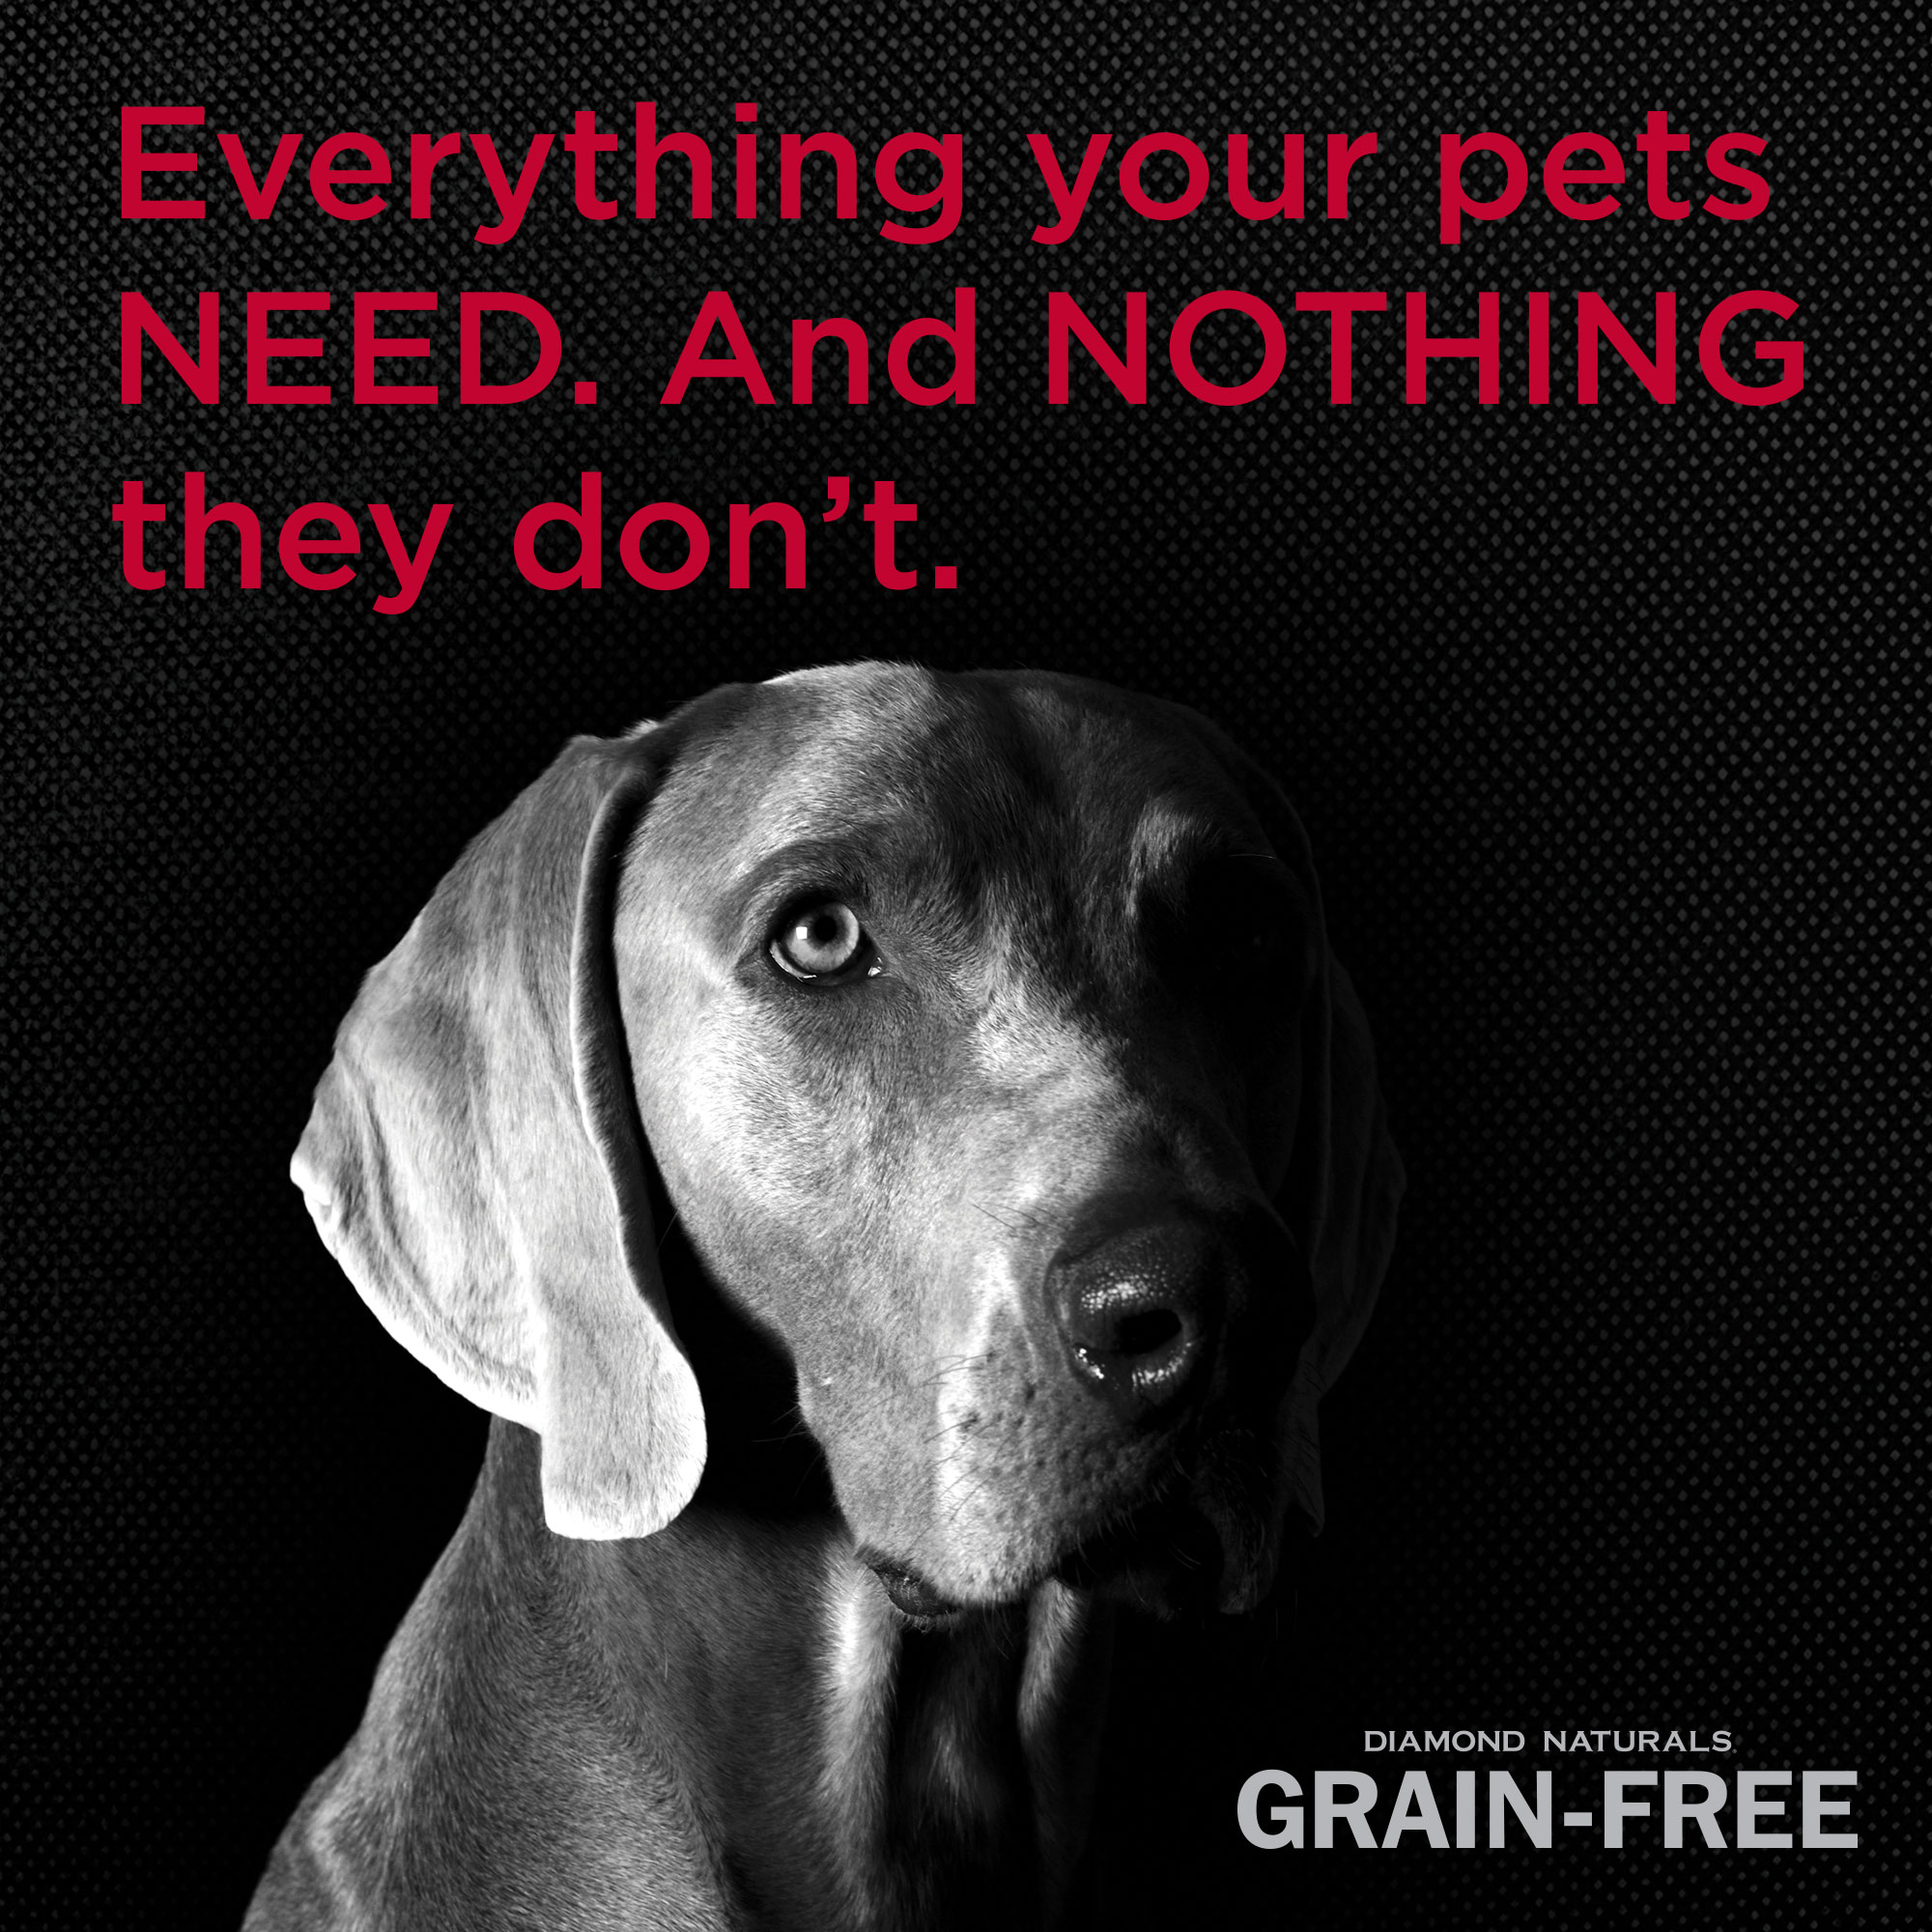 Diamond Naturals Grain-Free everything your pets need